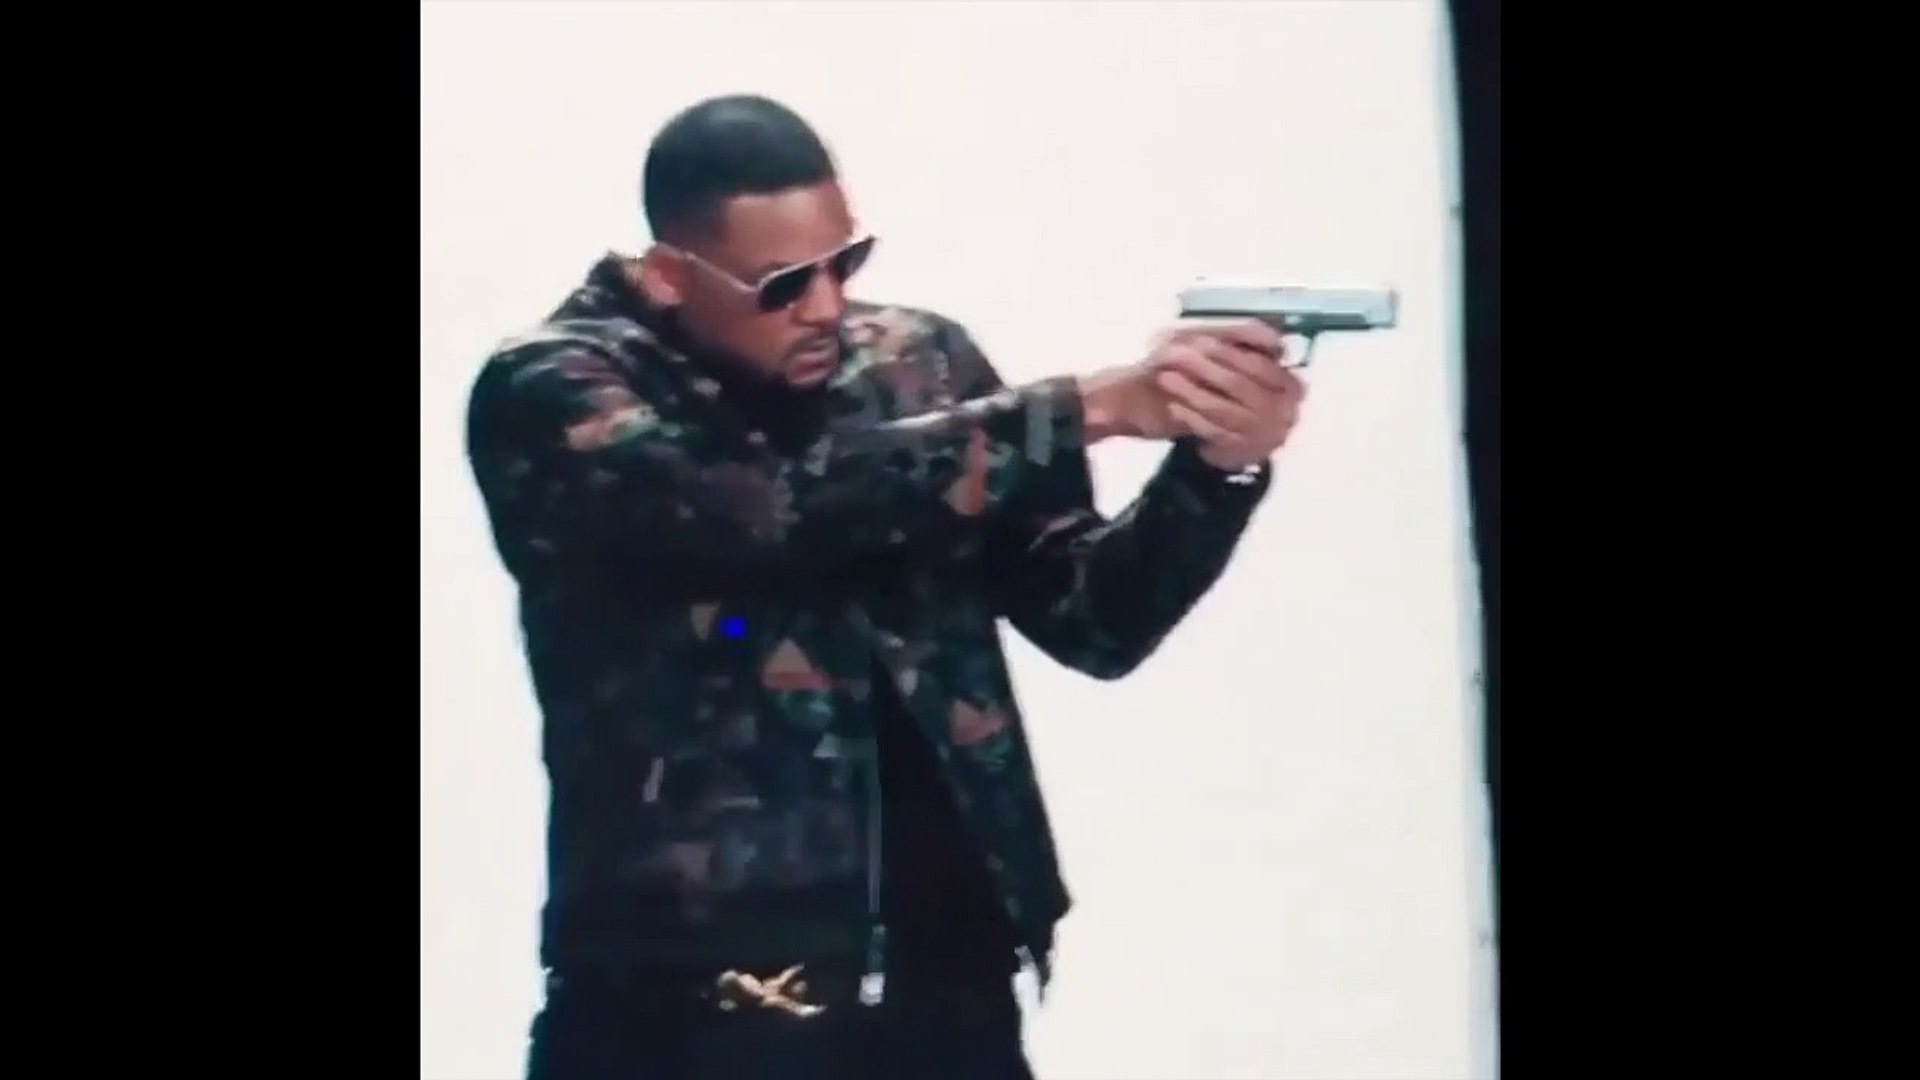 BAD BOYS FOR LIFE - first footage of Will Smith on set - BAD BOYS 3